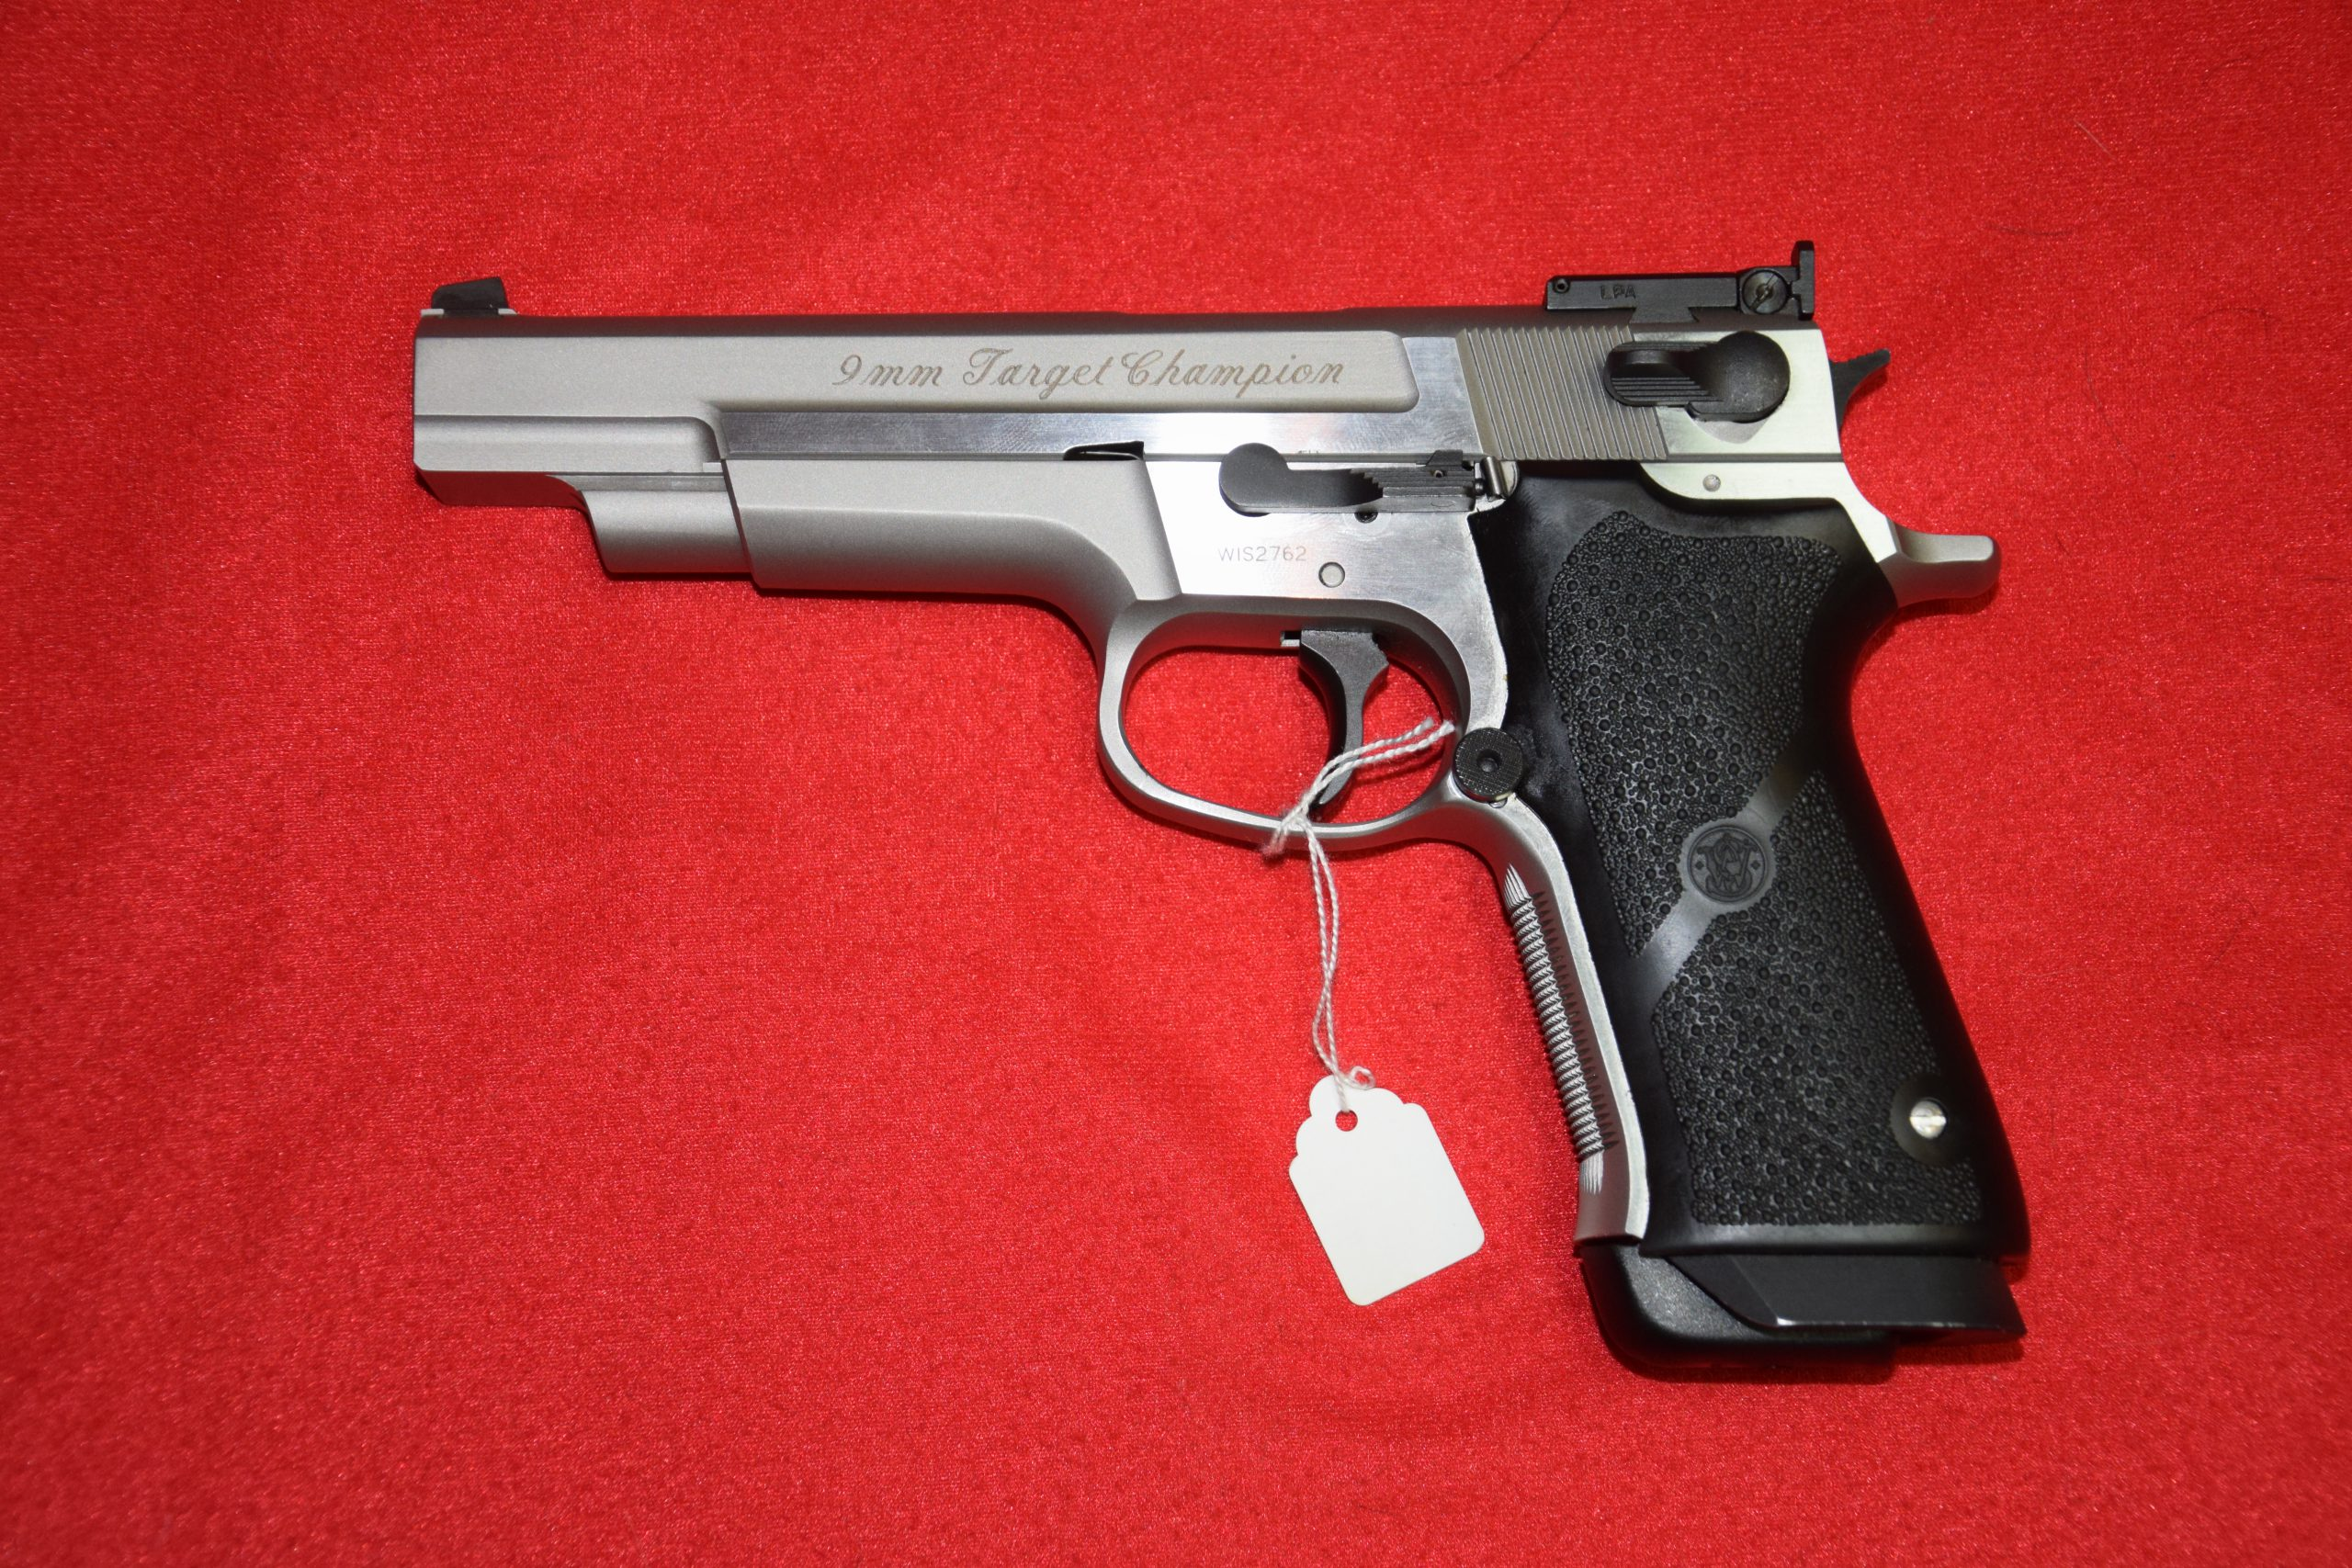 Smith&Wesson Target Champion / 9mm Para